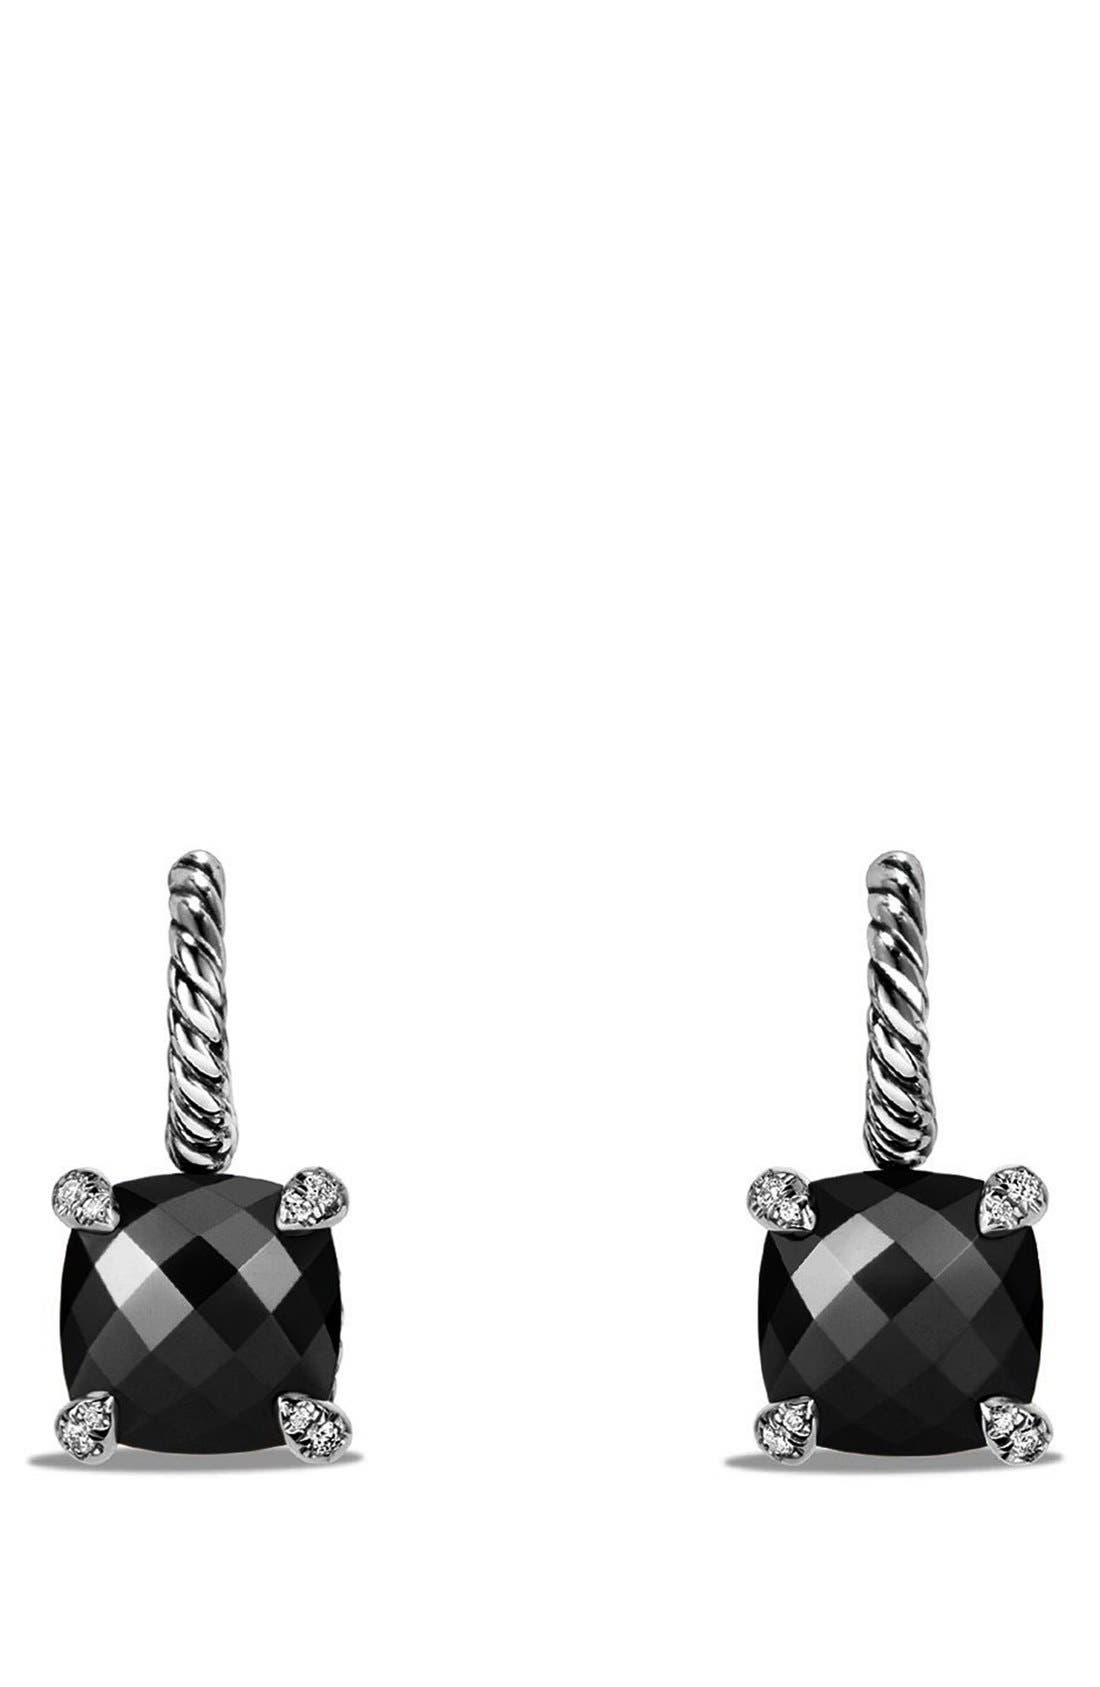 'Châtelaine' Drop Earrings with Semiprecious Stones and Diamonds,                         Main,                         color, 001